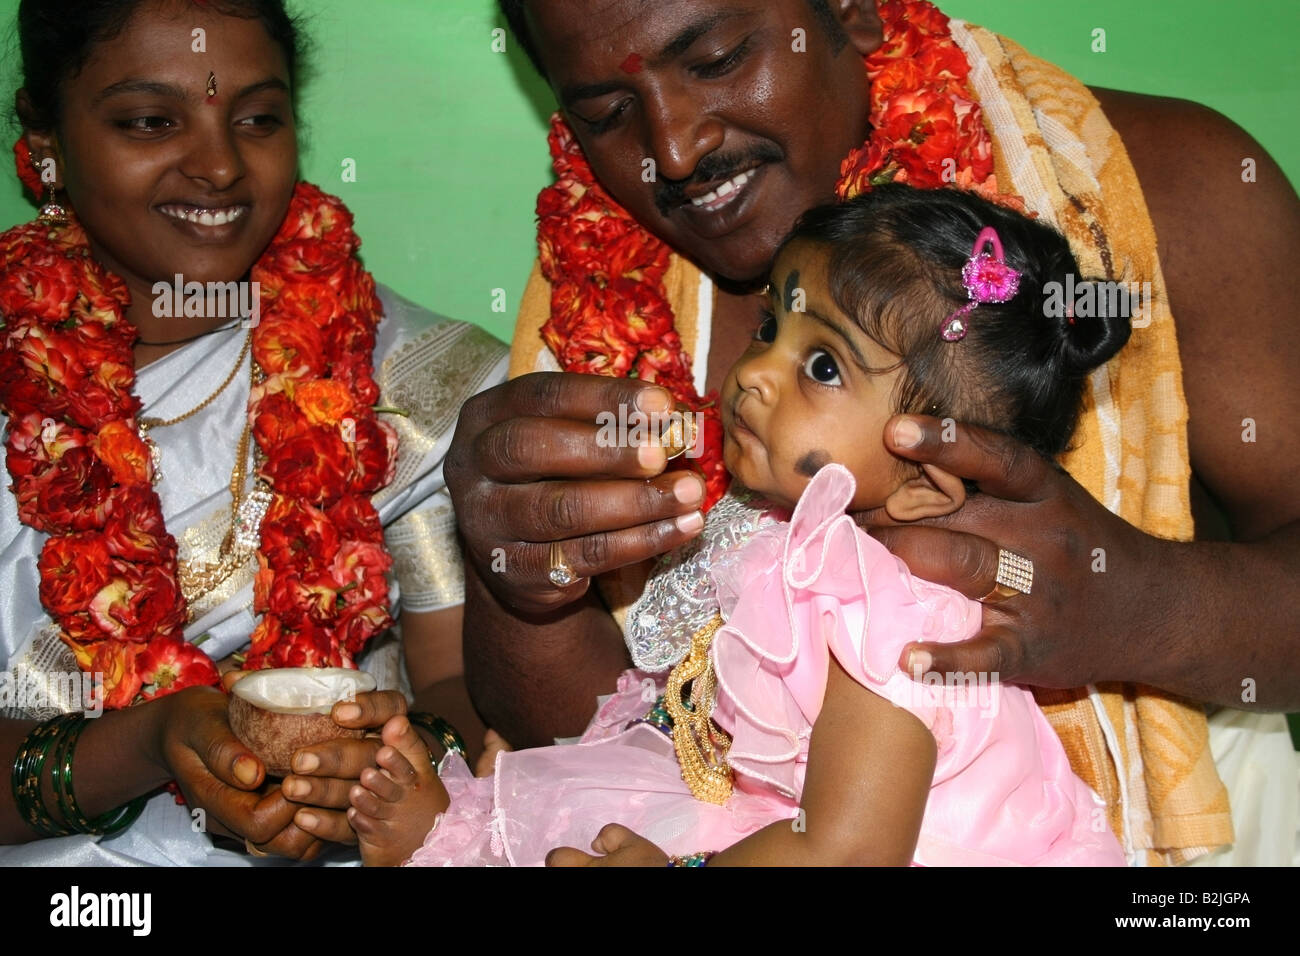 Parents carrying out Namakaran naming ceremony ritual father whispers name into the girls ear and she drinks honey - Stock Image